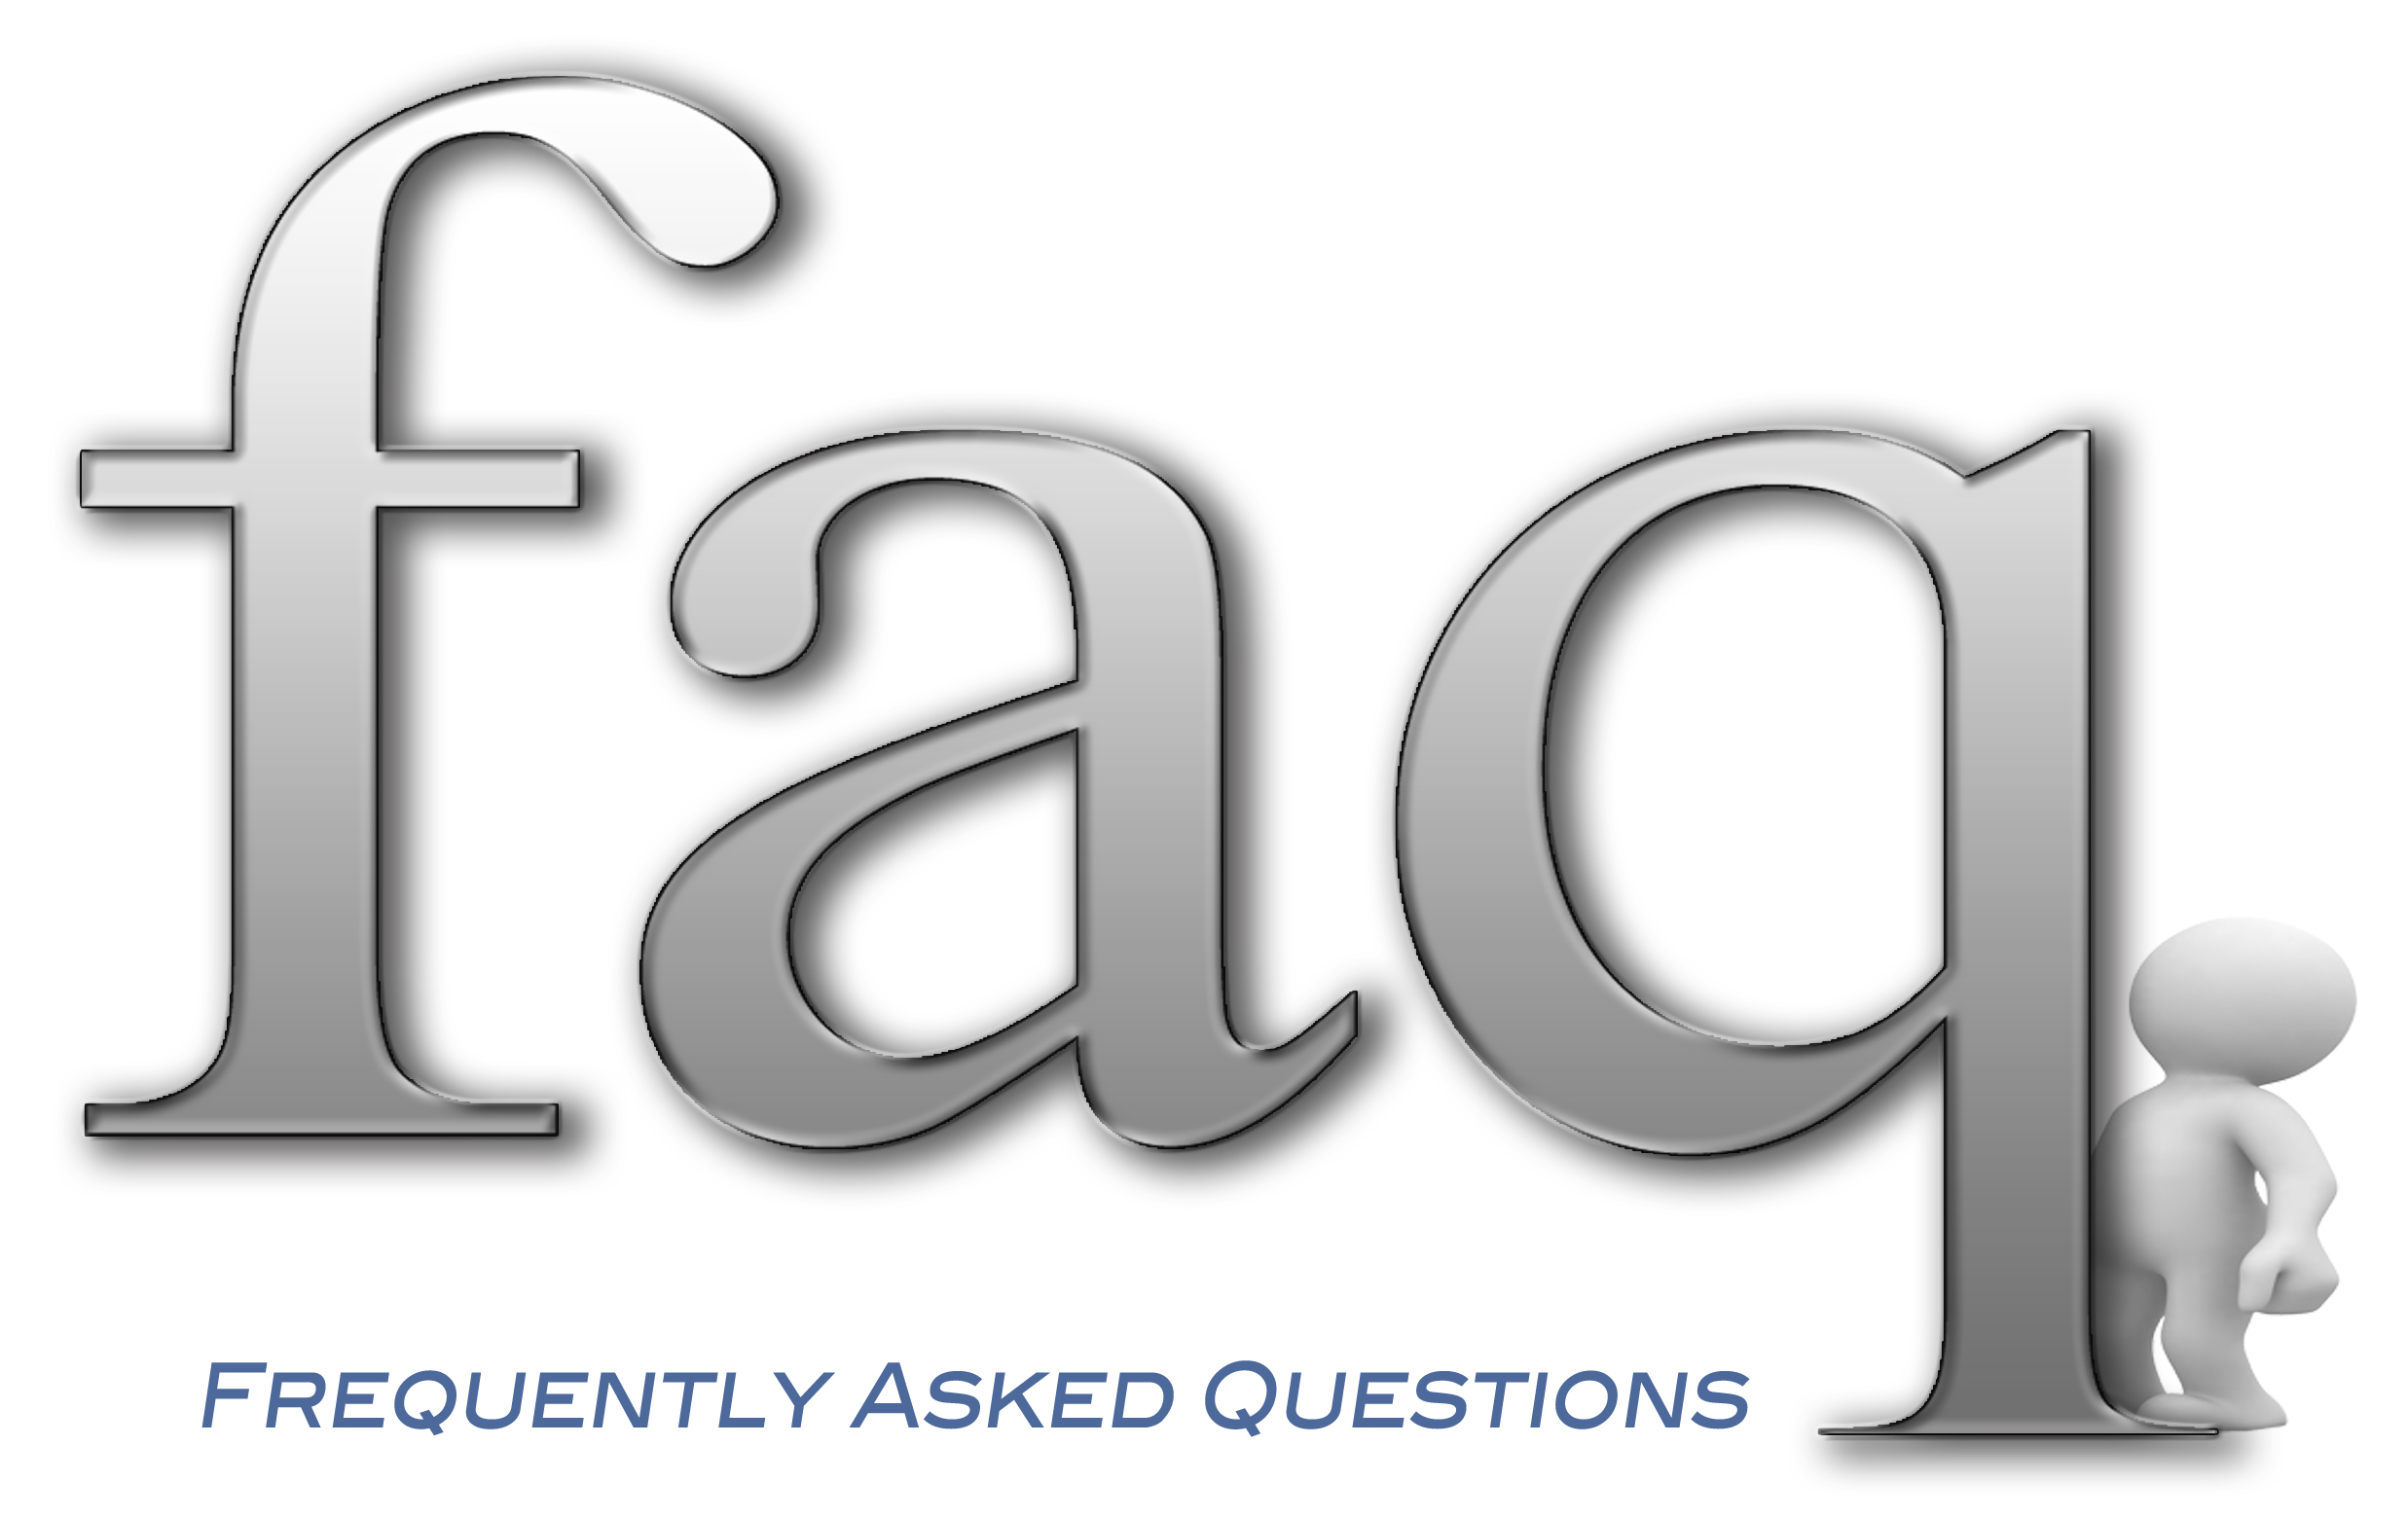 faq-banners4churches.jpg